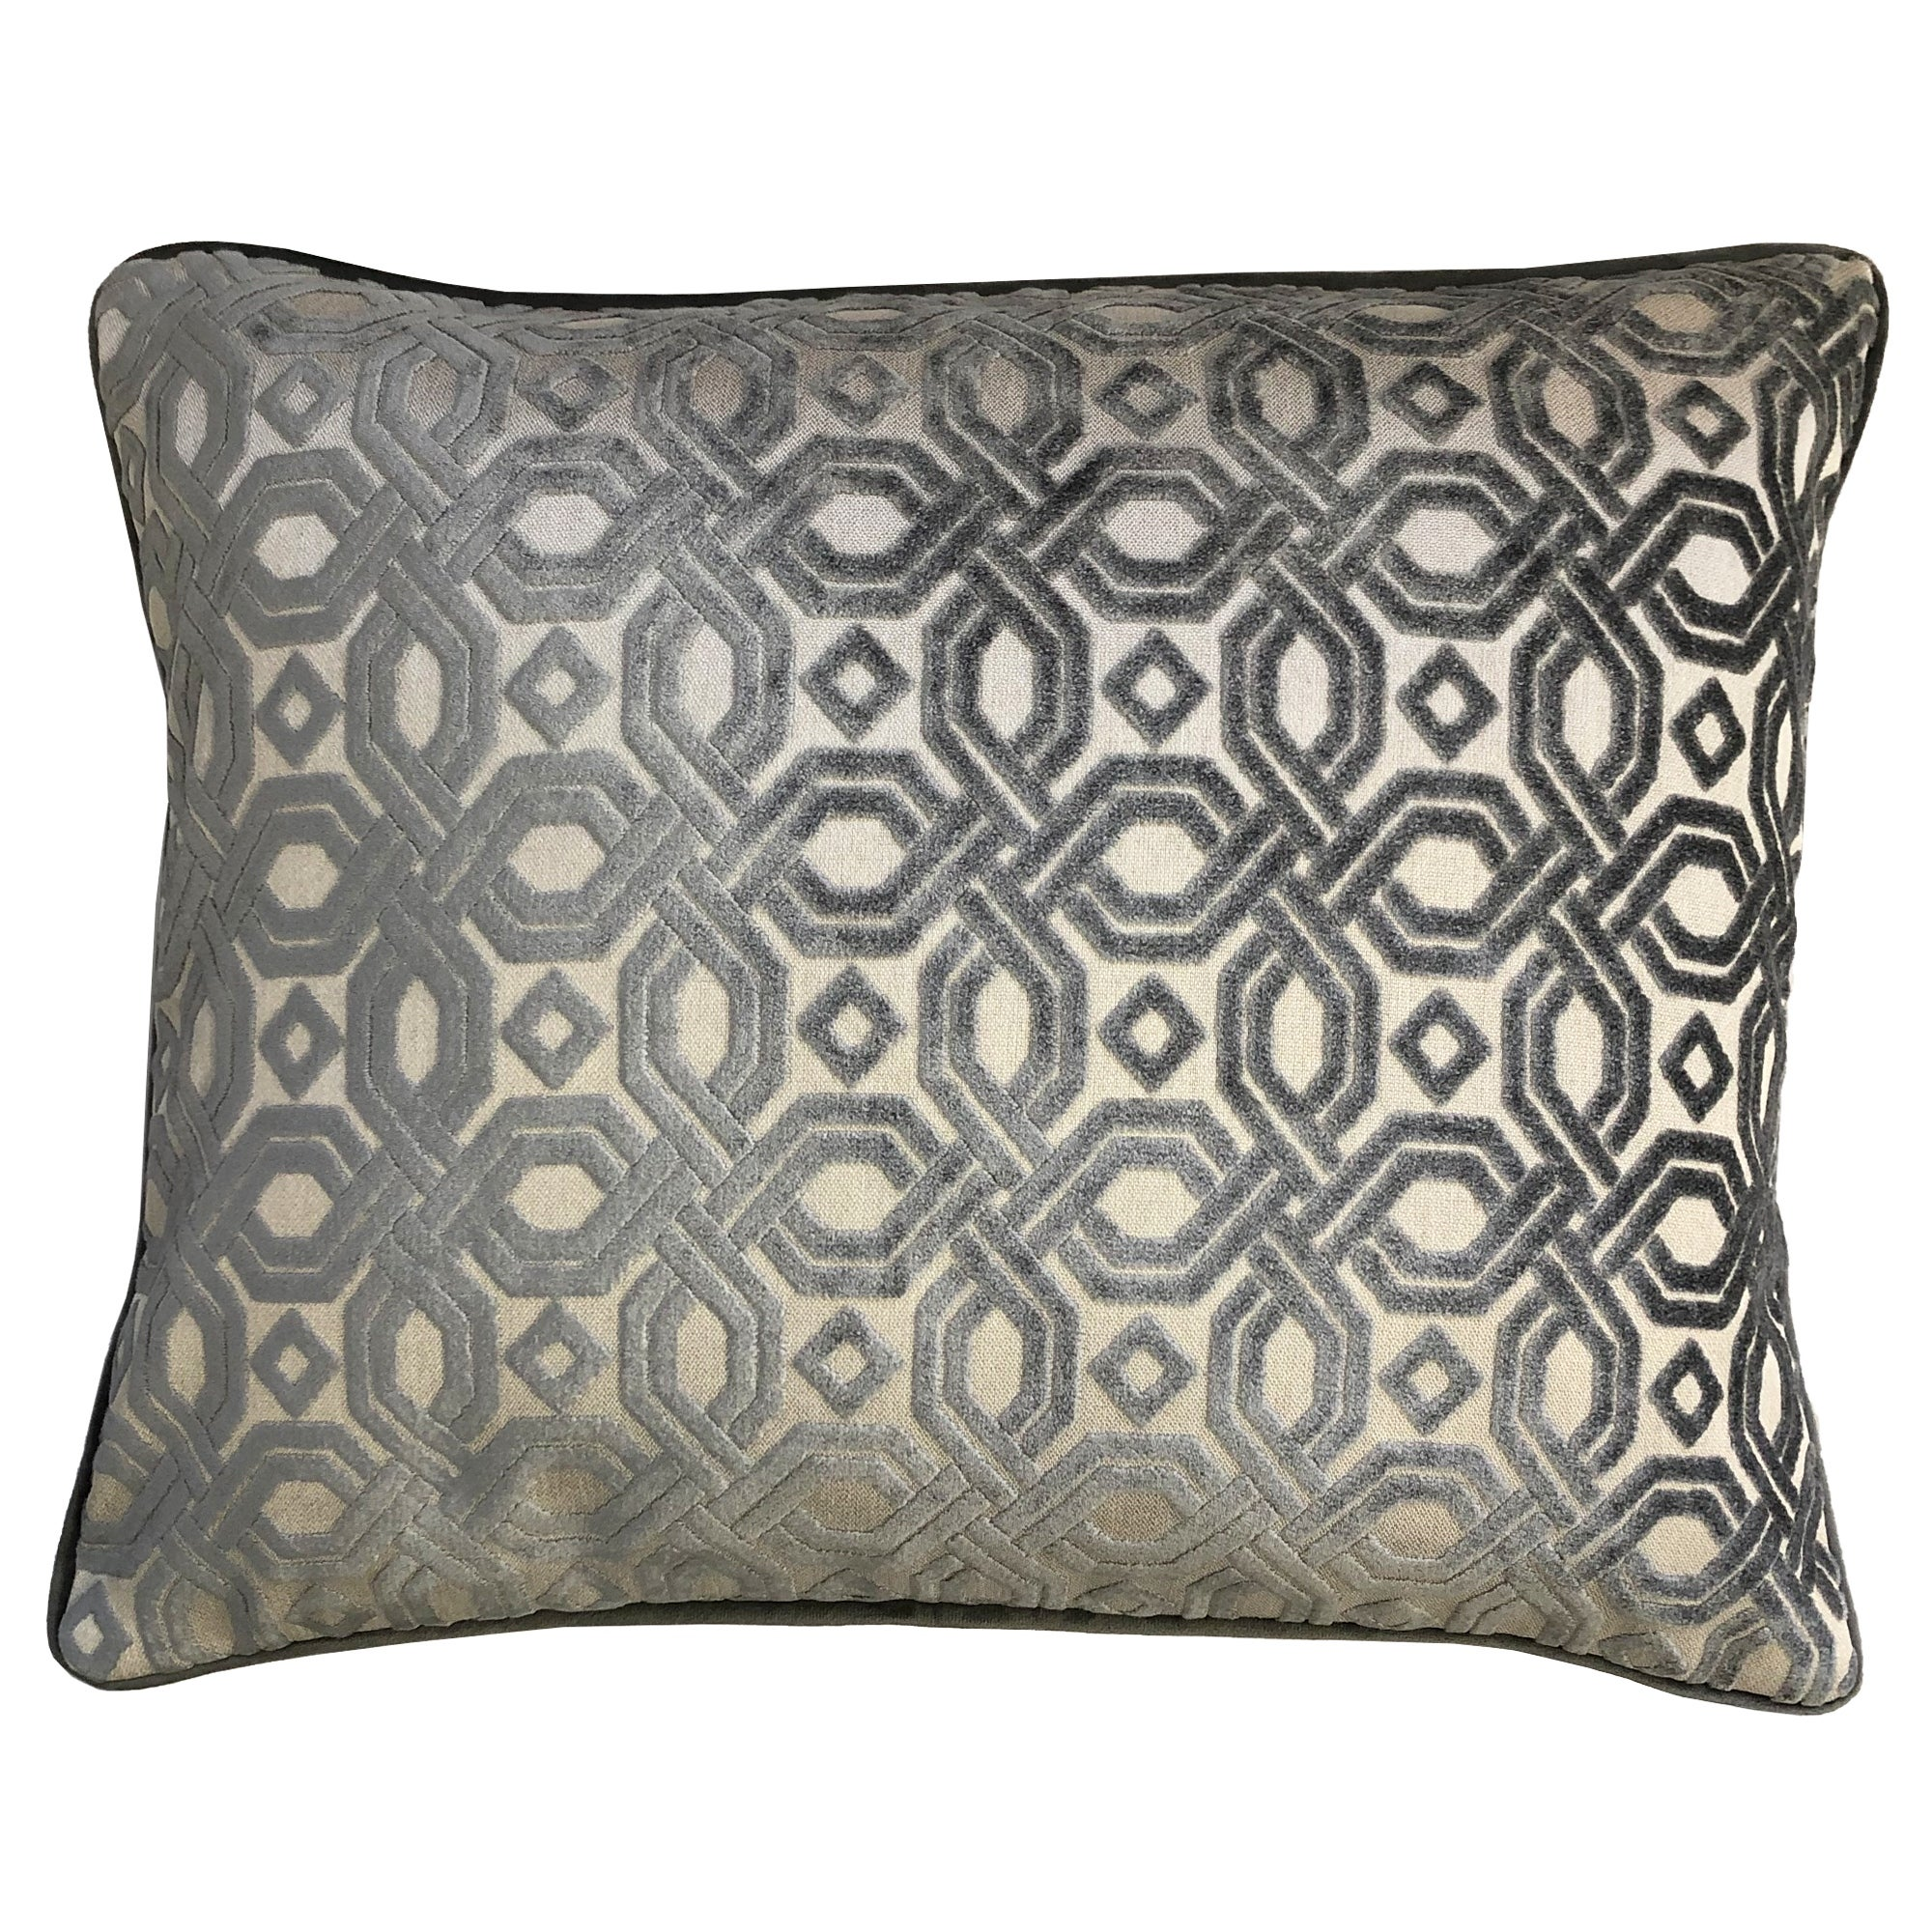 Rodeo Home Zachary Decorative Geometric Chenille Throw Pillow Overstock 32363473